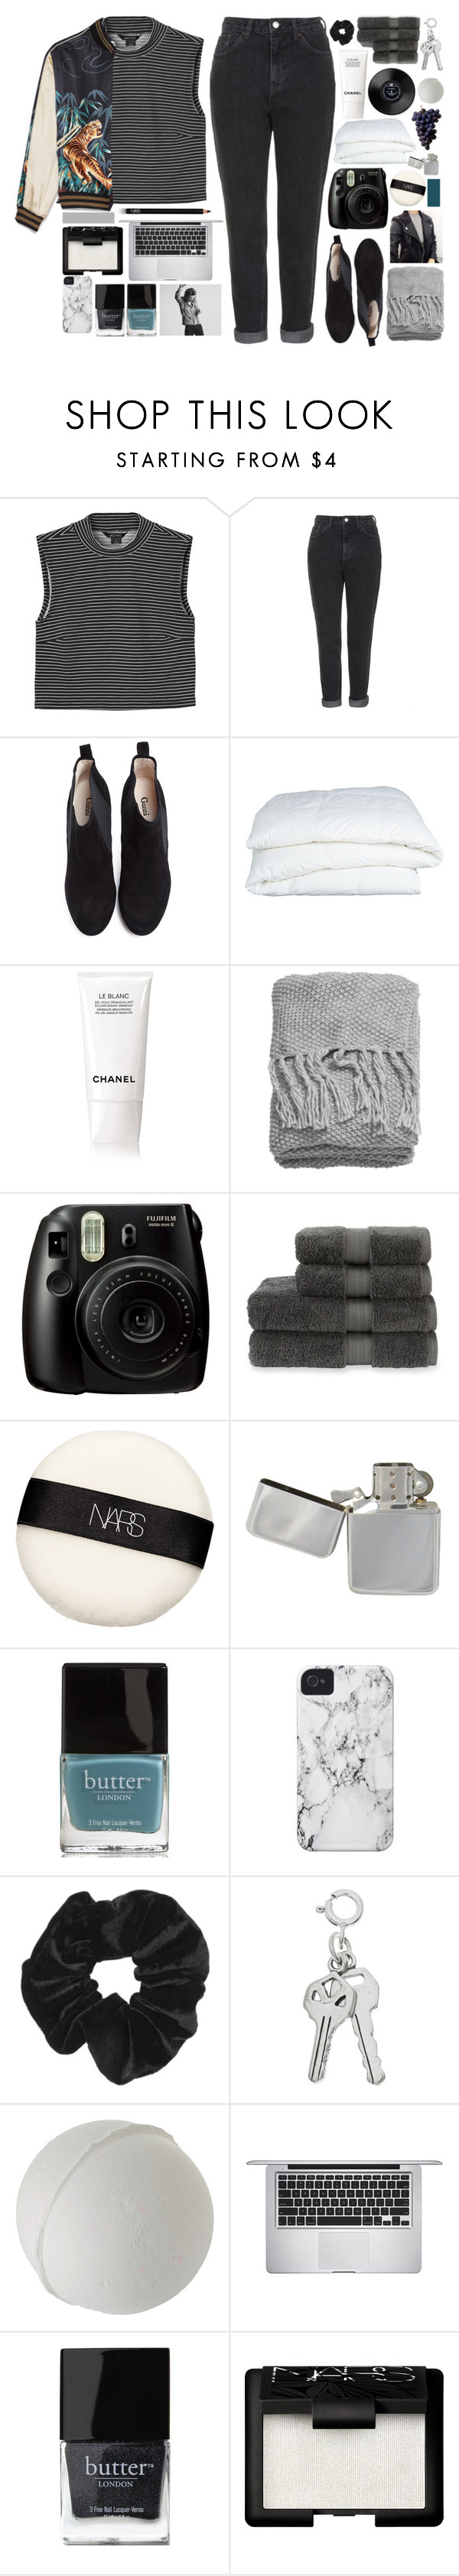 """""""tonight and always"""" by alanalove-123 ❤ liked on Polyvore featuring Monki, Topshop, Ganni, Crate and Barrel, Chanel, H&M, Christy, NARS Cosmetics, Butter London and Case-Mate"""